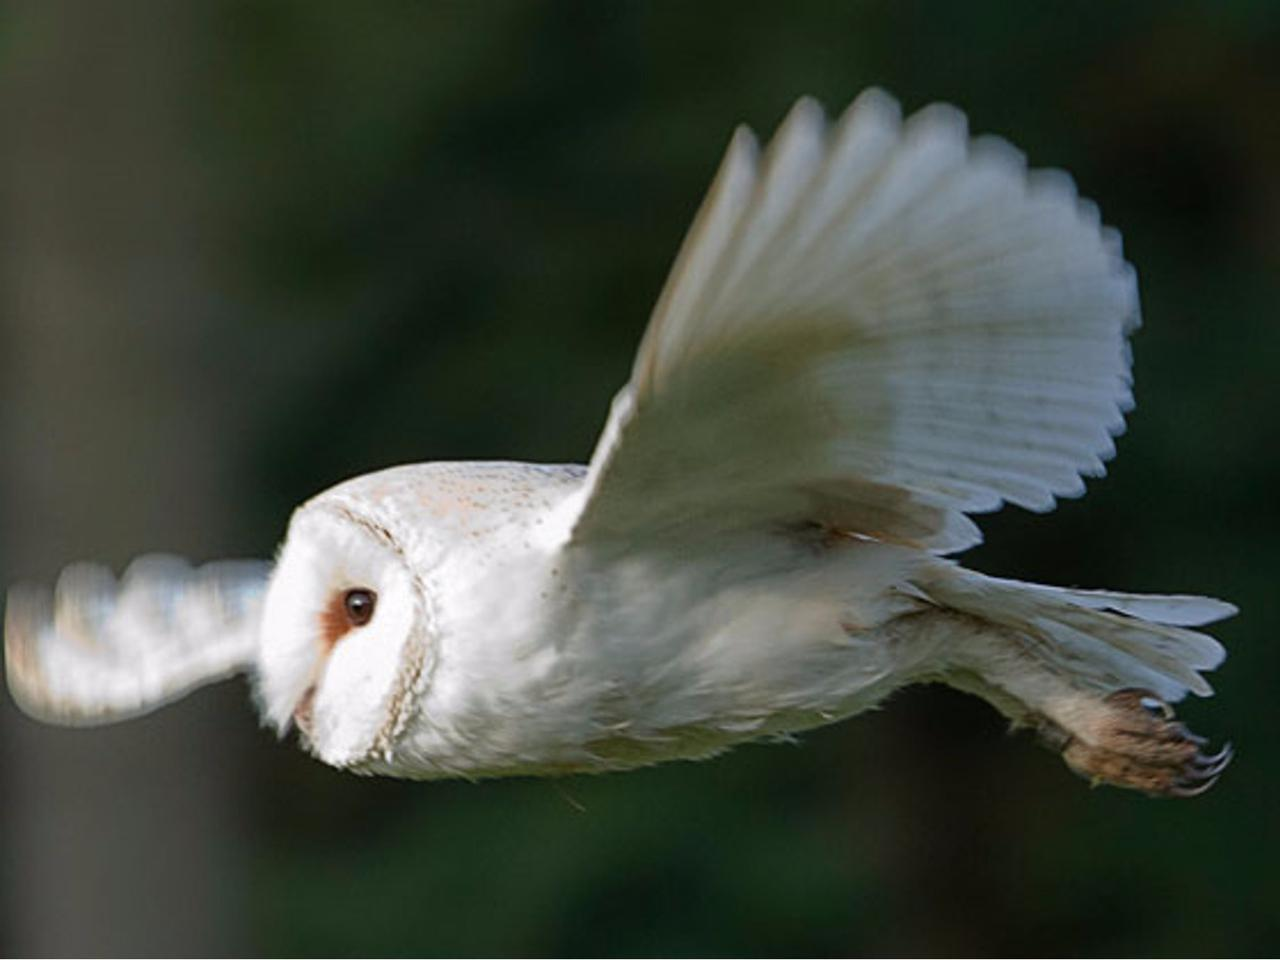 Owl wing structures could be the key to quieter air foils